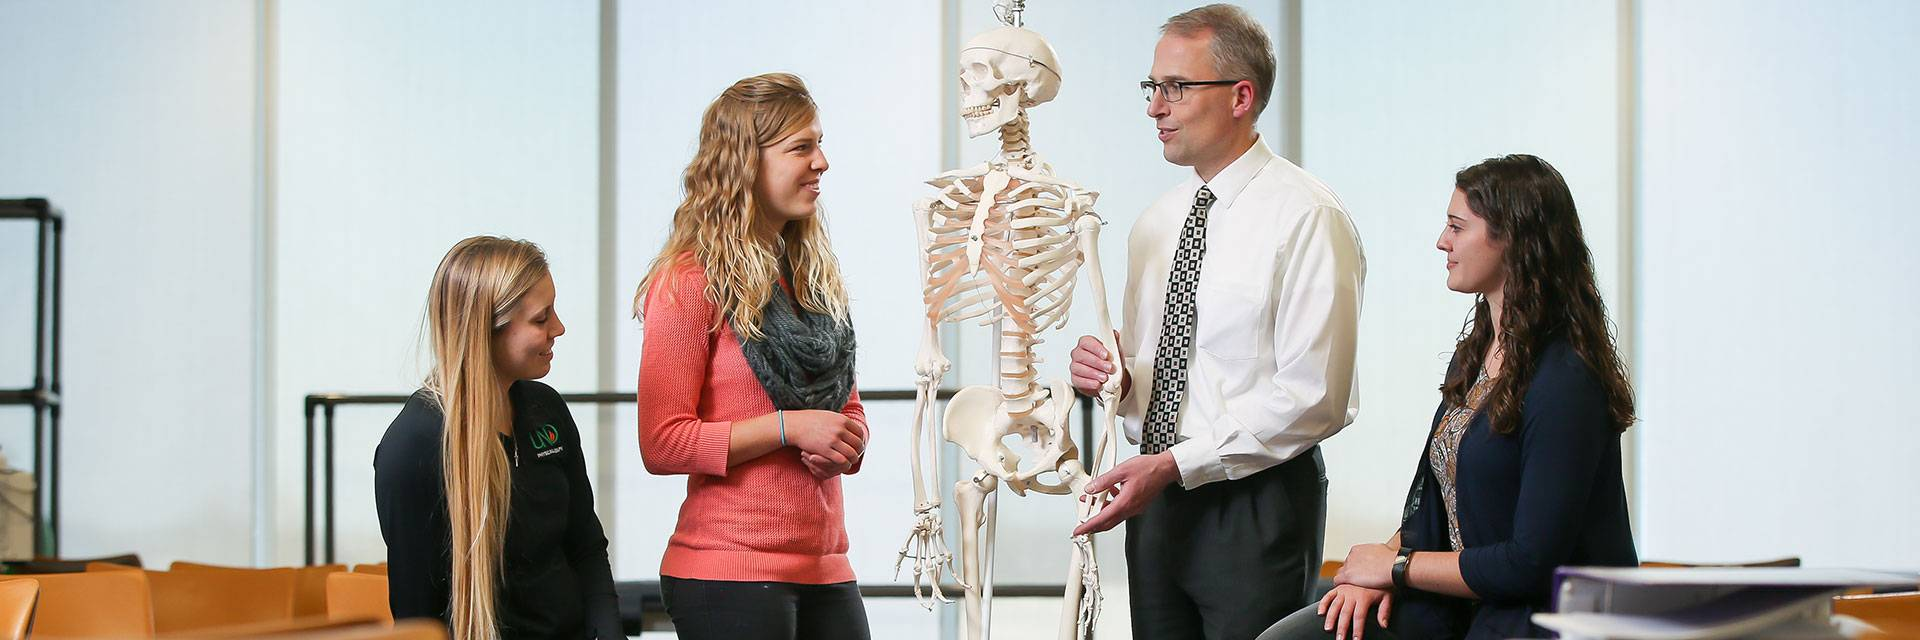 physical therapy students and instructor with skeleton